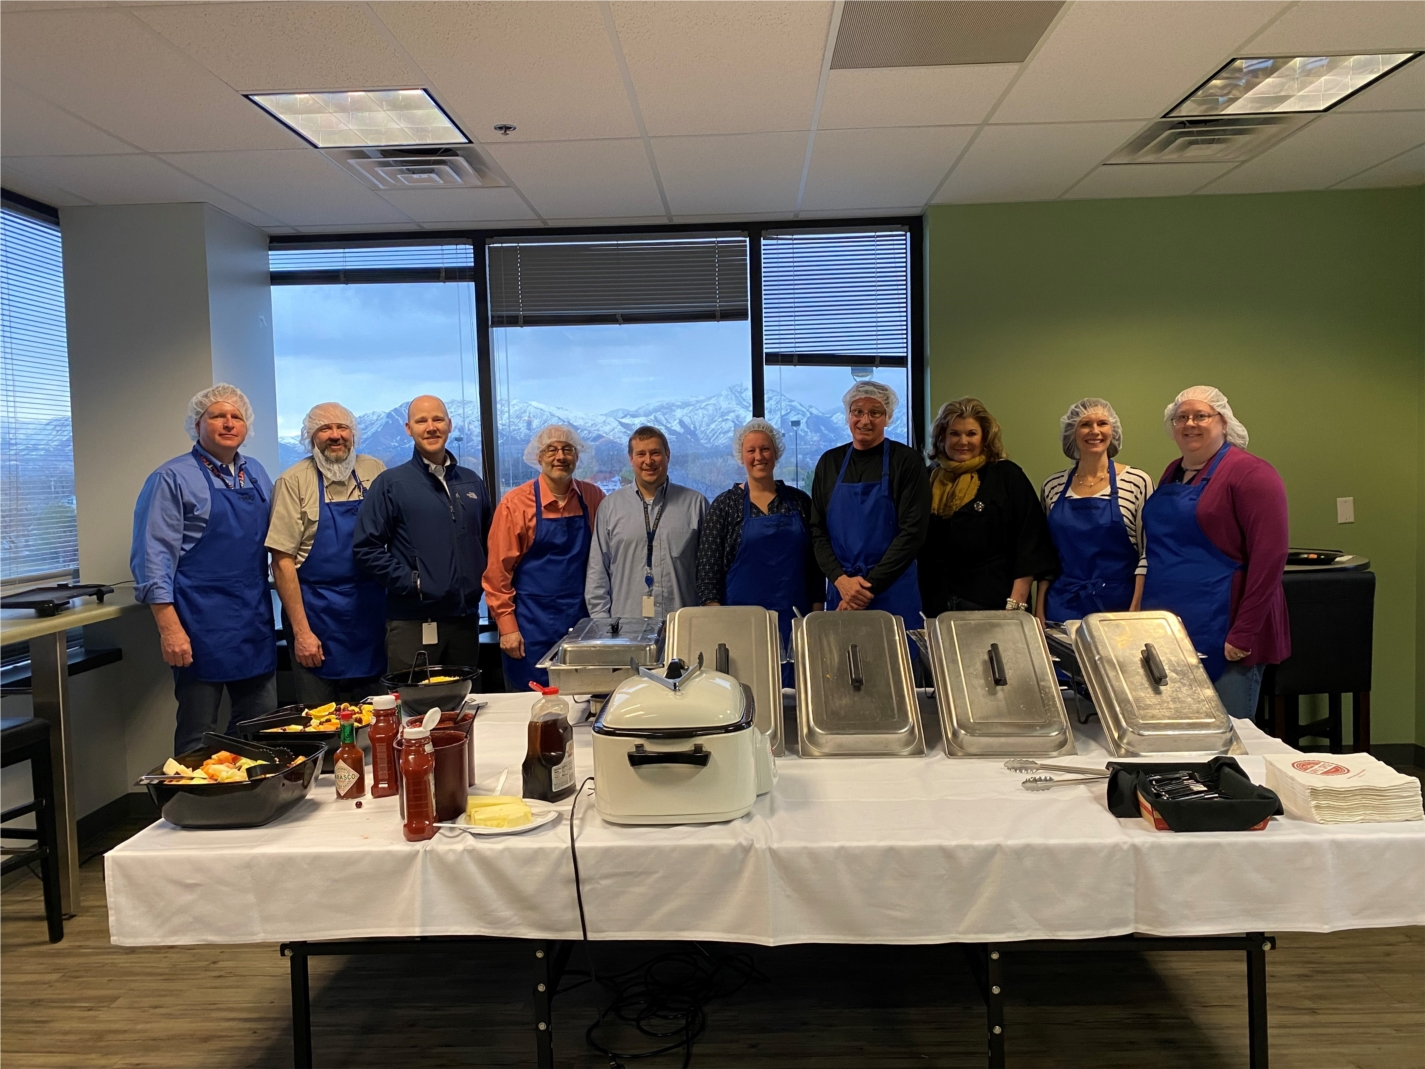 Executives served breakfast to employees for Employee Appreciation Week!